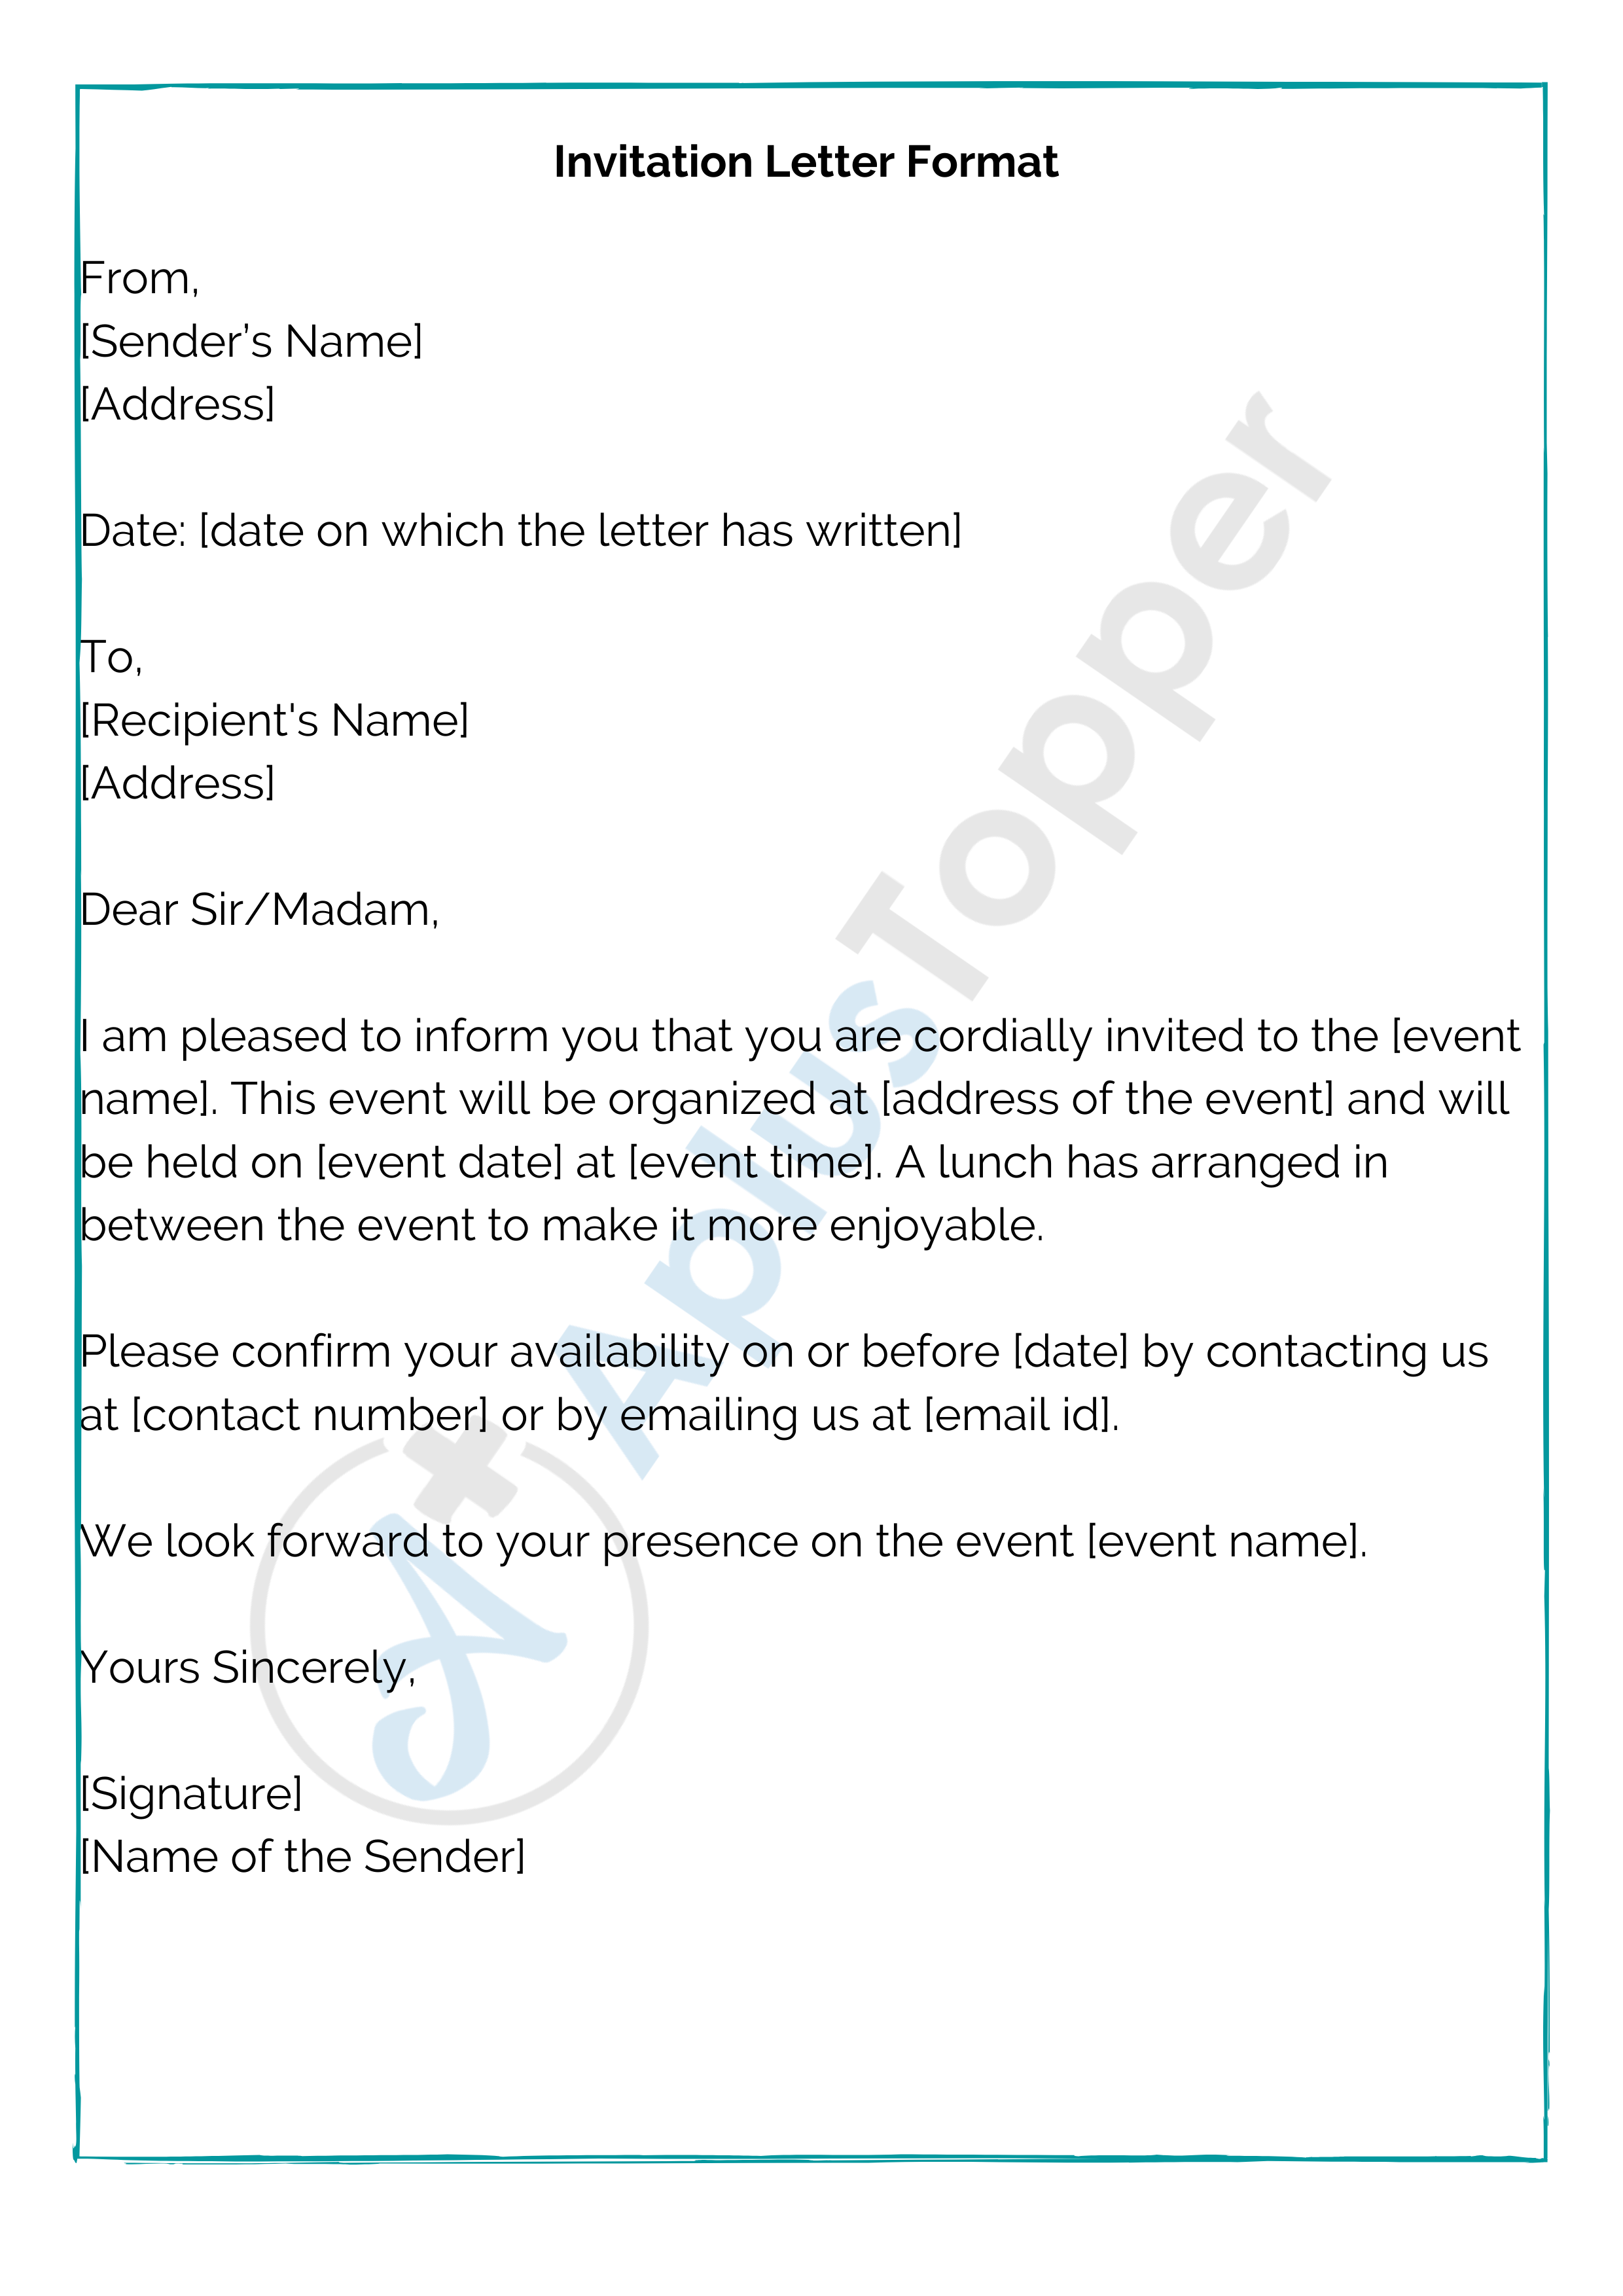 invitation letter  format samples and how to write an